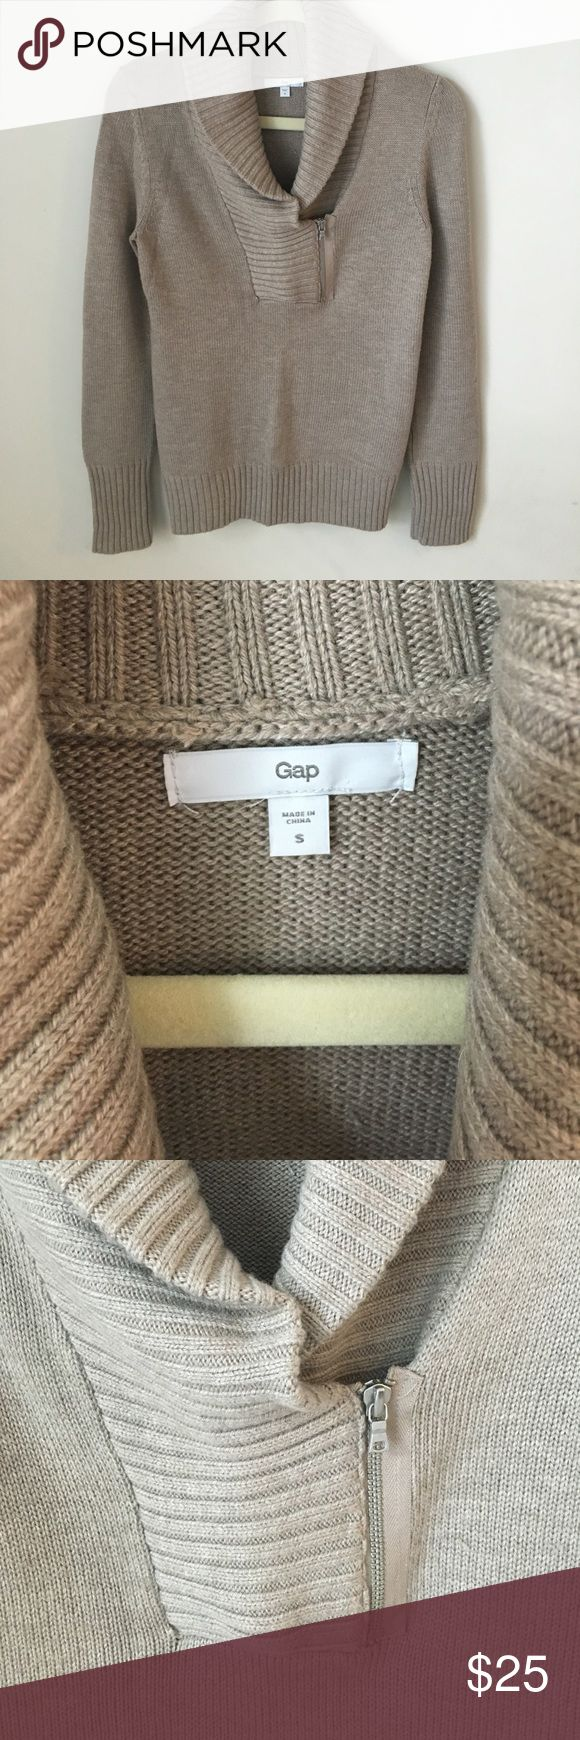 Gap sweater Thick and cozy Gap sweater! Beautiful taupe color. Great for fall with jeans are leggings. Great condition! Stored in smoke free home! GAP Sweaters Cowl & Turtlenecks